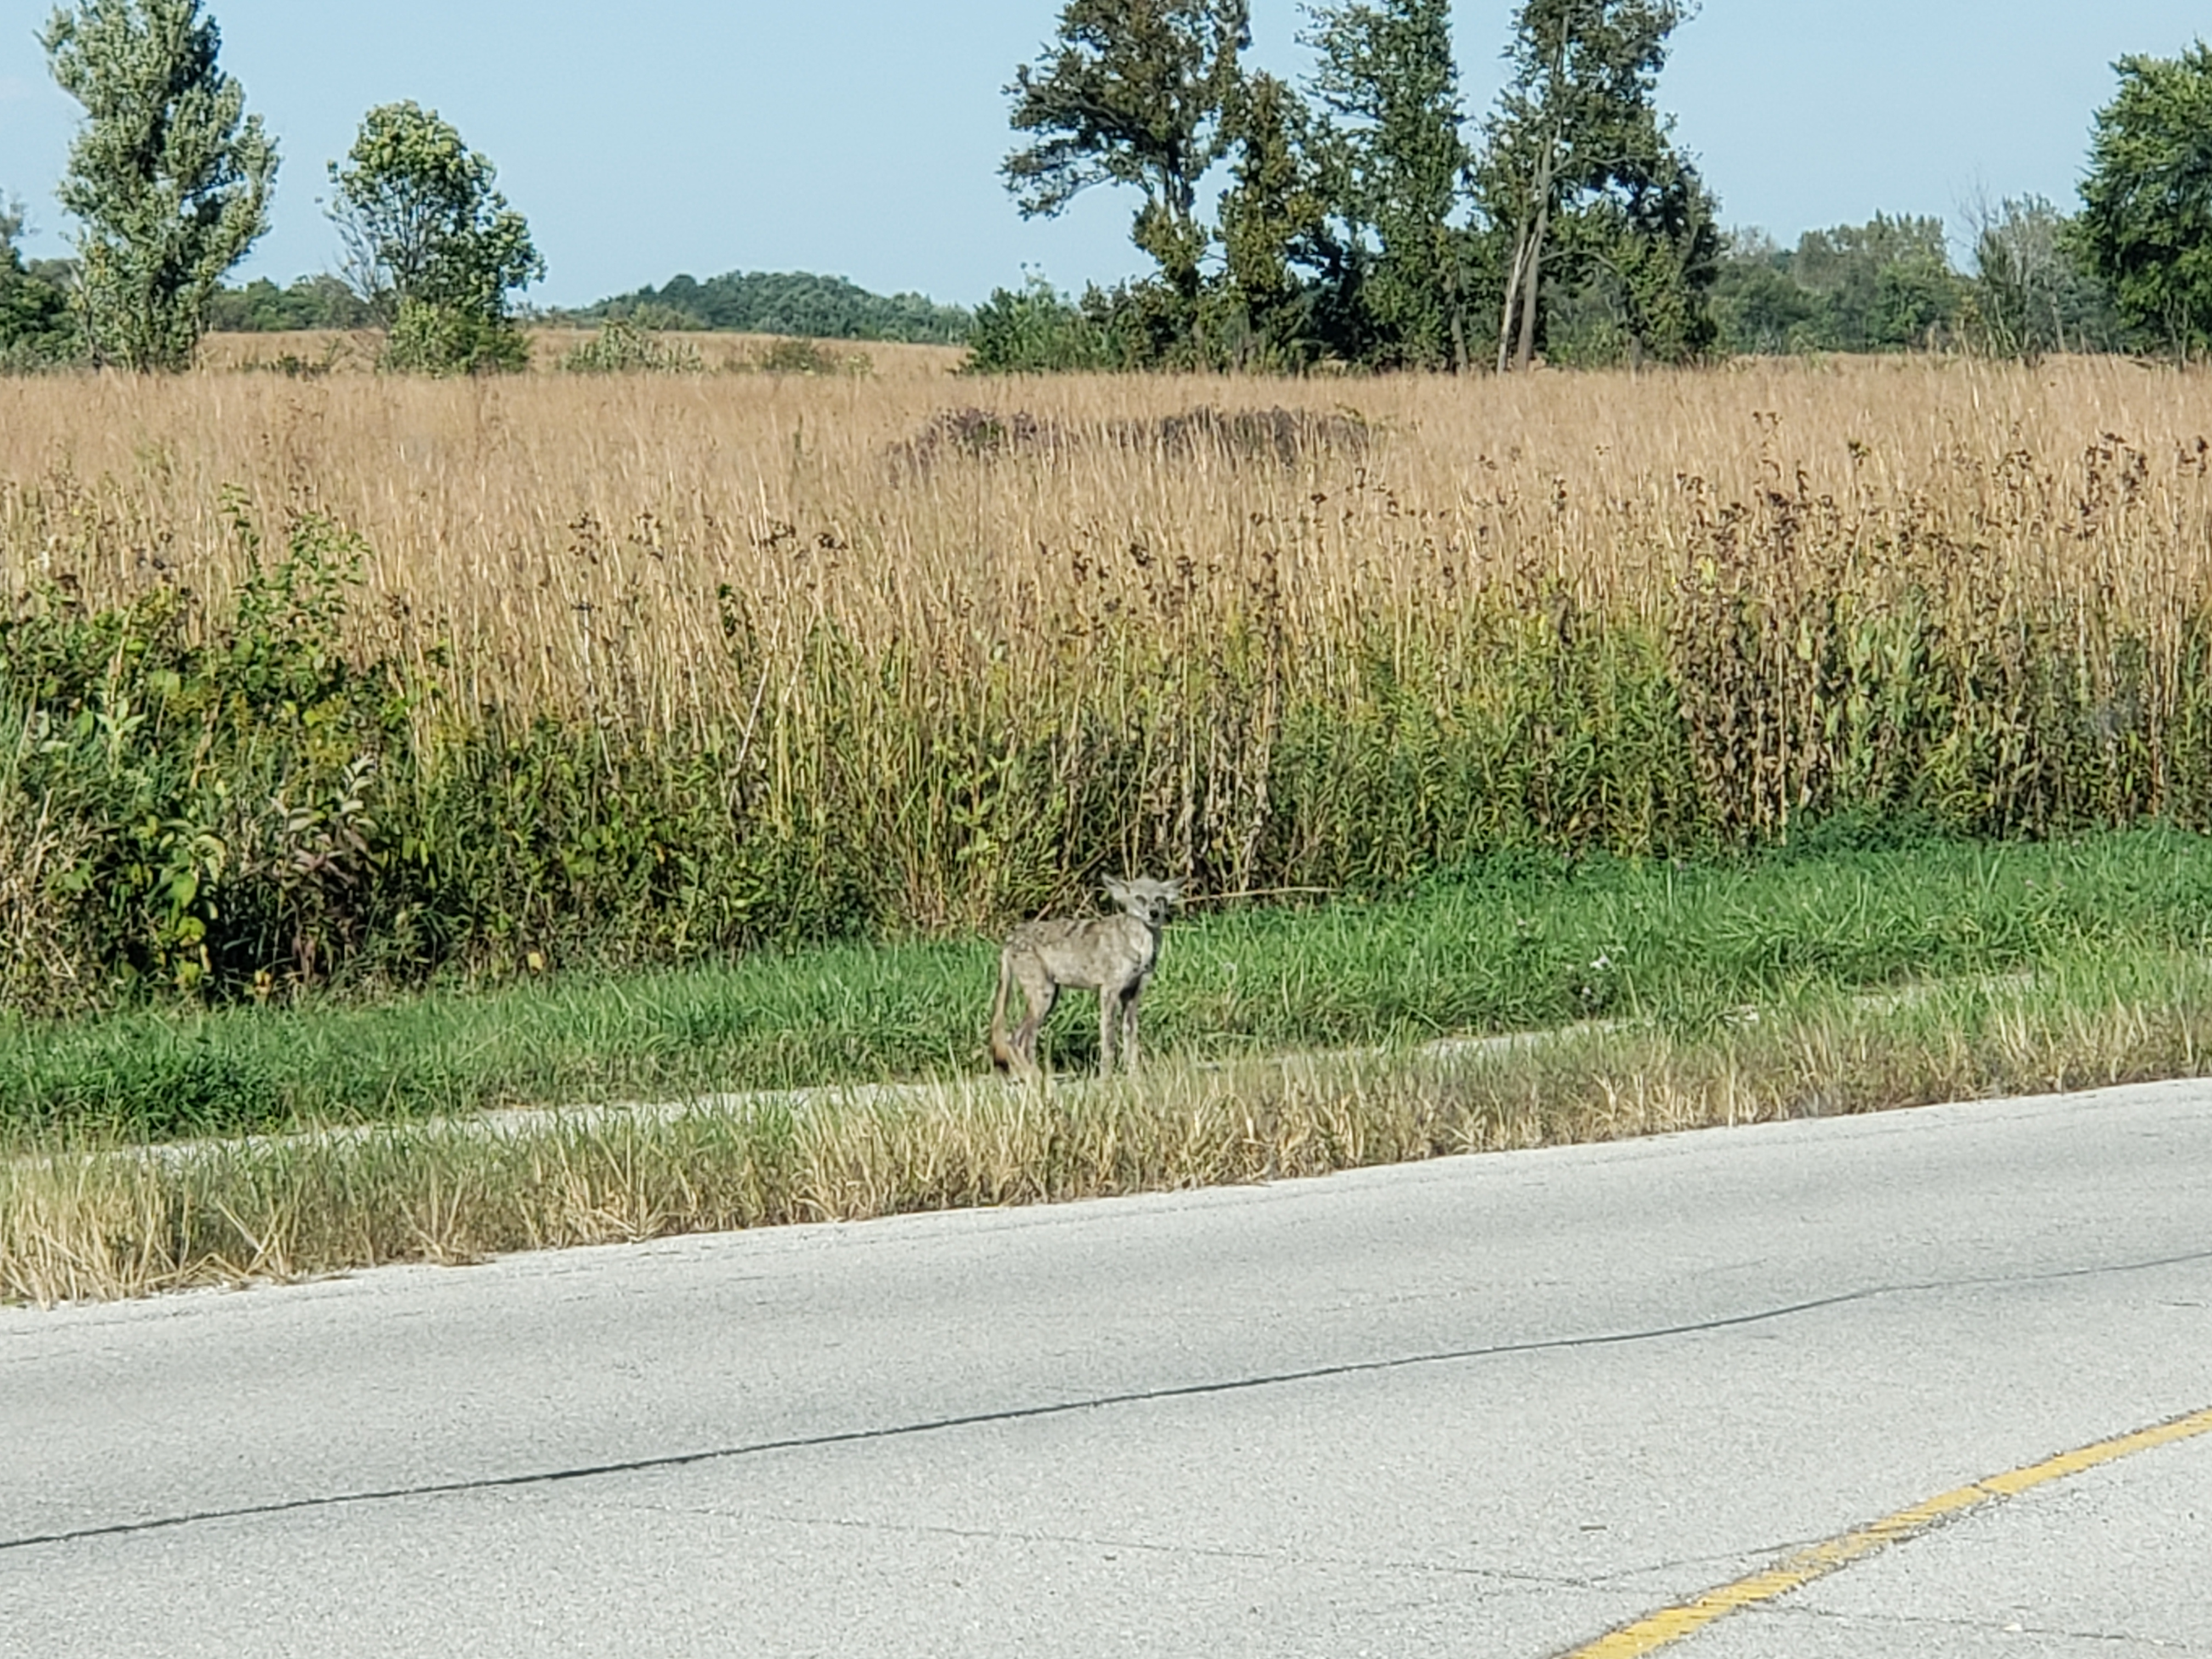 The photographer saw this coyote near the main entrance by the security station on Sept. 27. nature, wildlife, animal, mammal, coyote Photo: Jessica Ryan